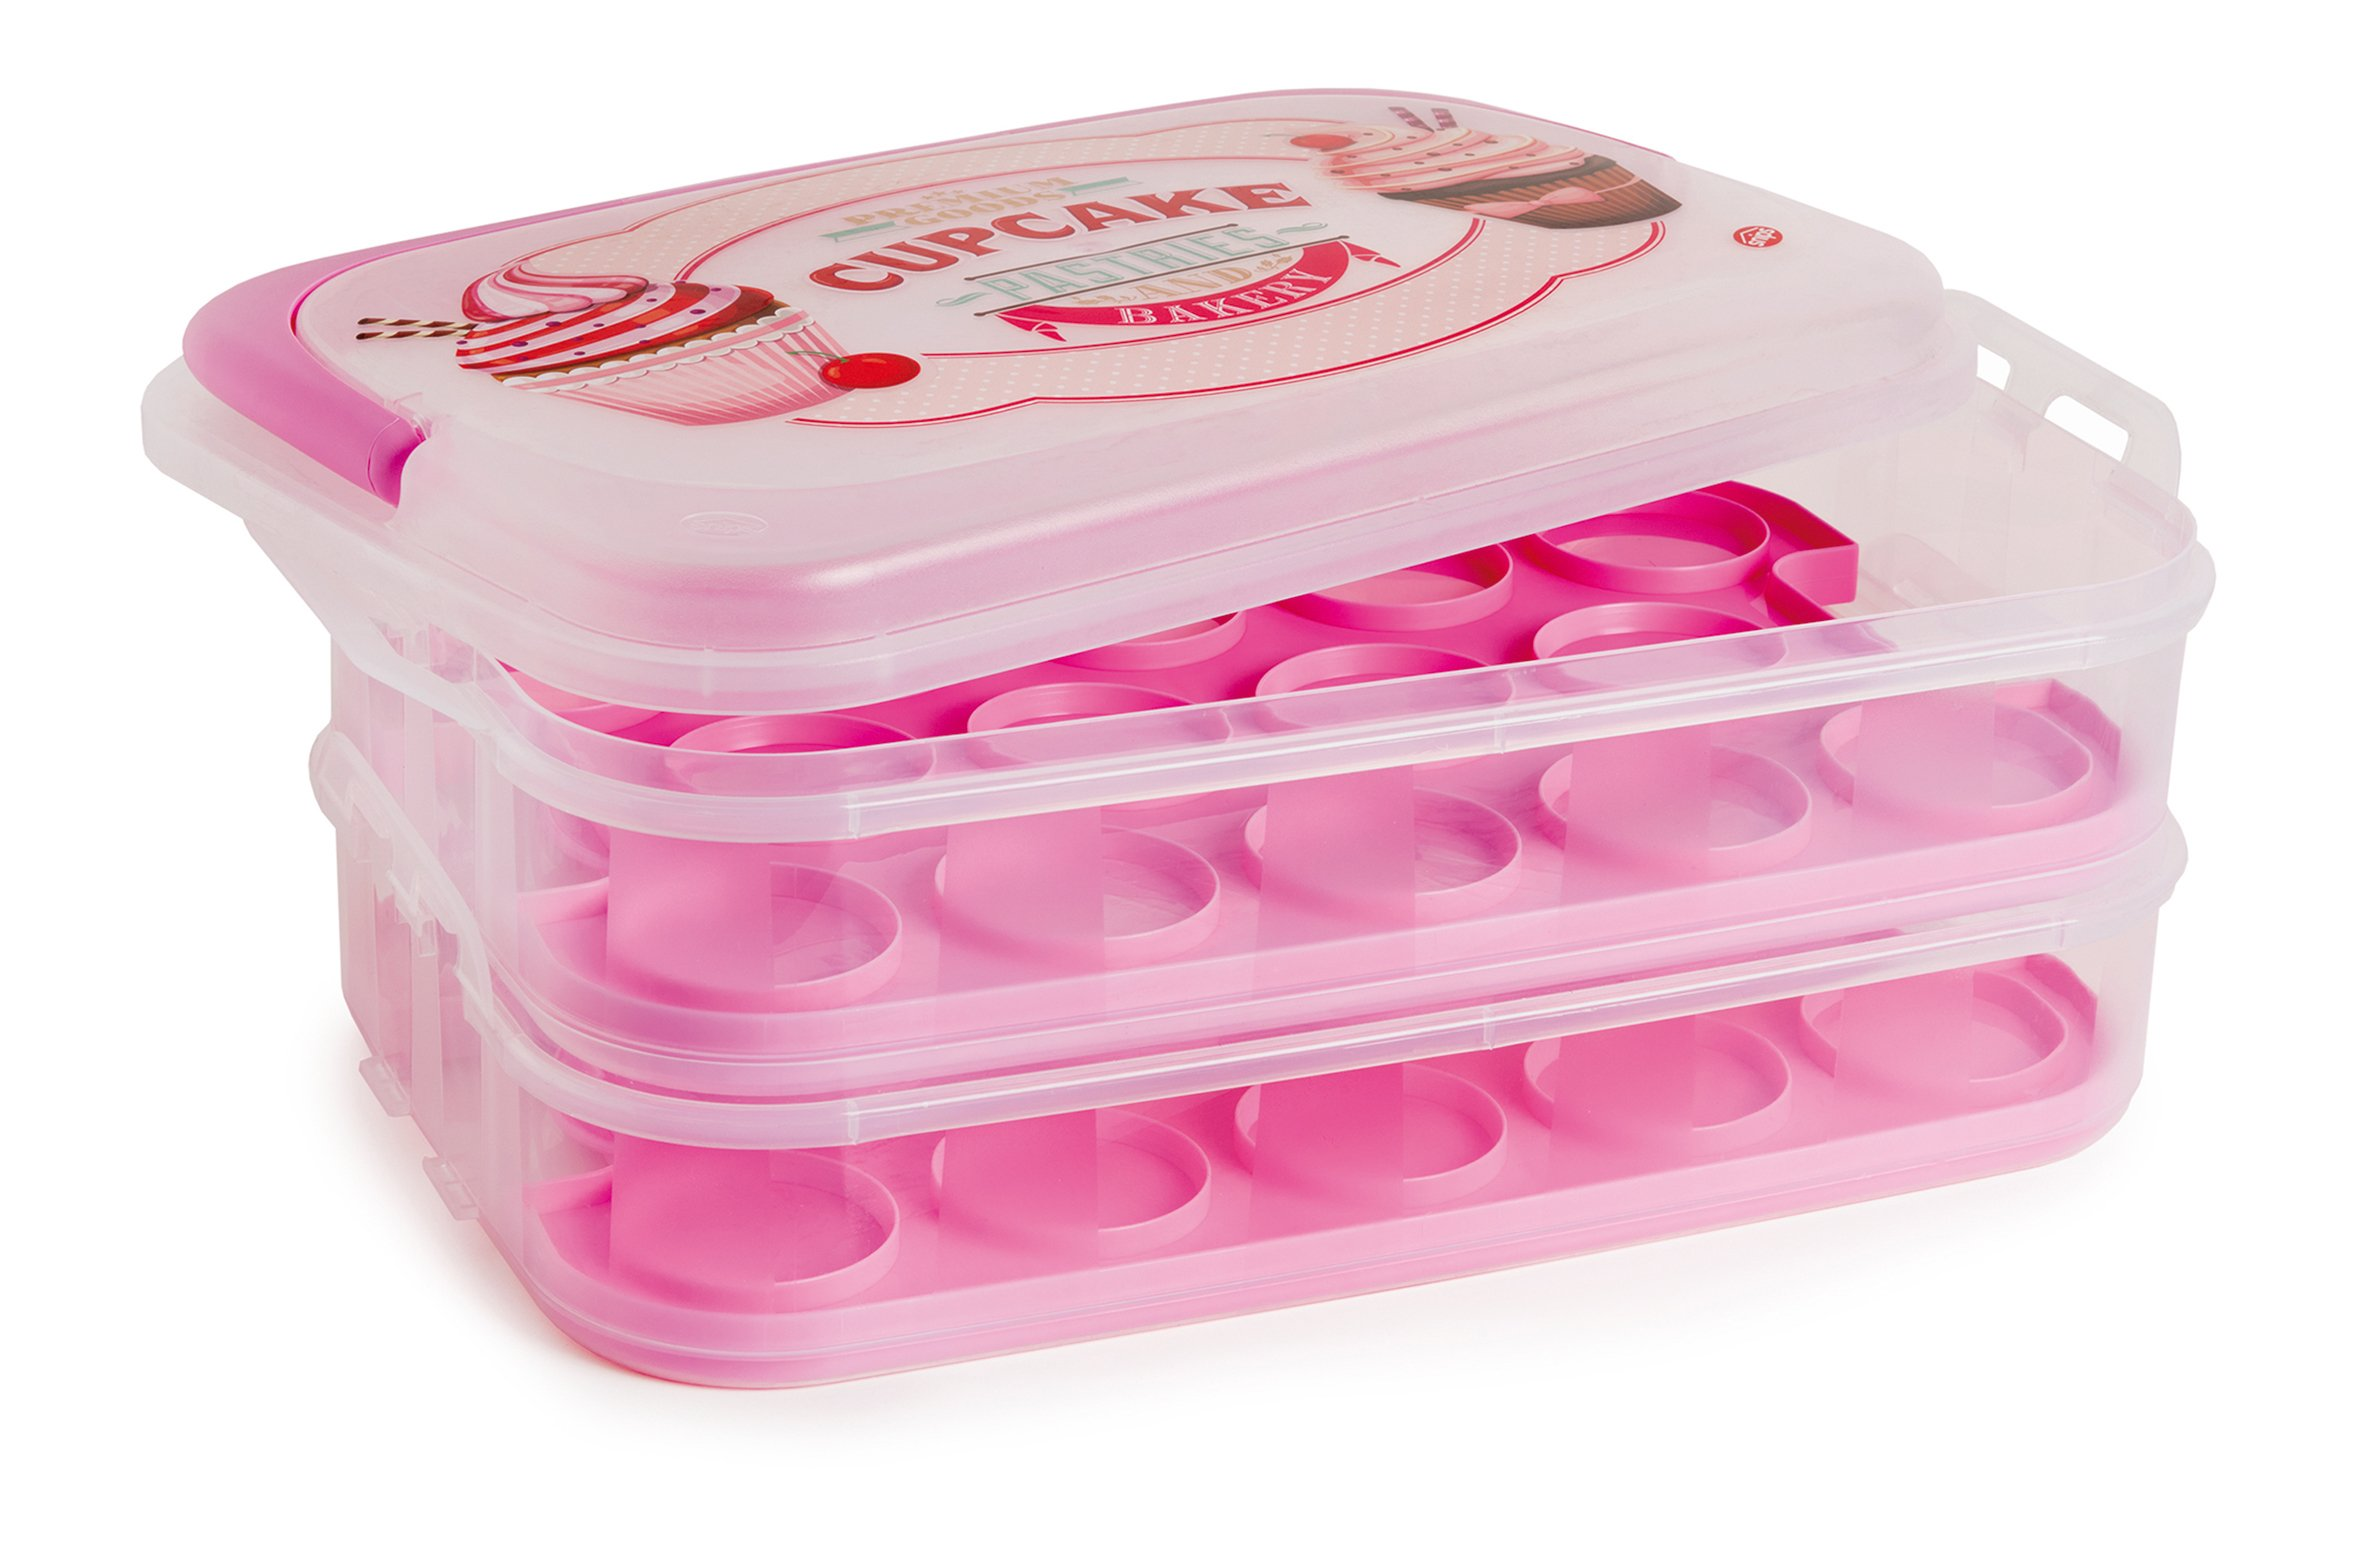 Snips 2 Tier Cupcake Holder (Holds 28 cupcakes), Pink